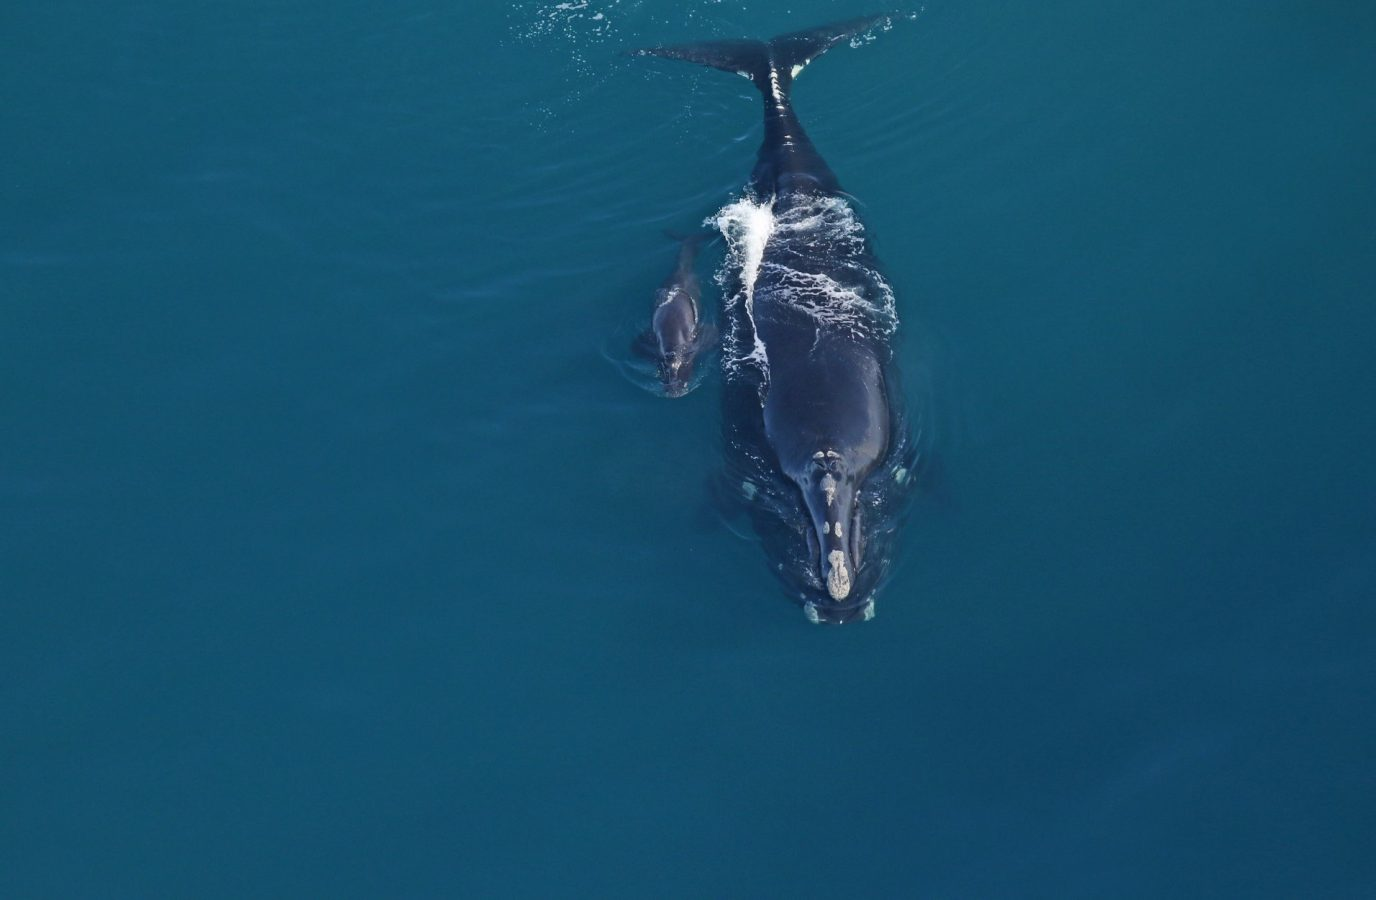 First North Atlantic right whale calf of 2020 calving season sighted